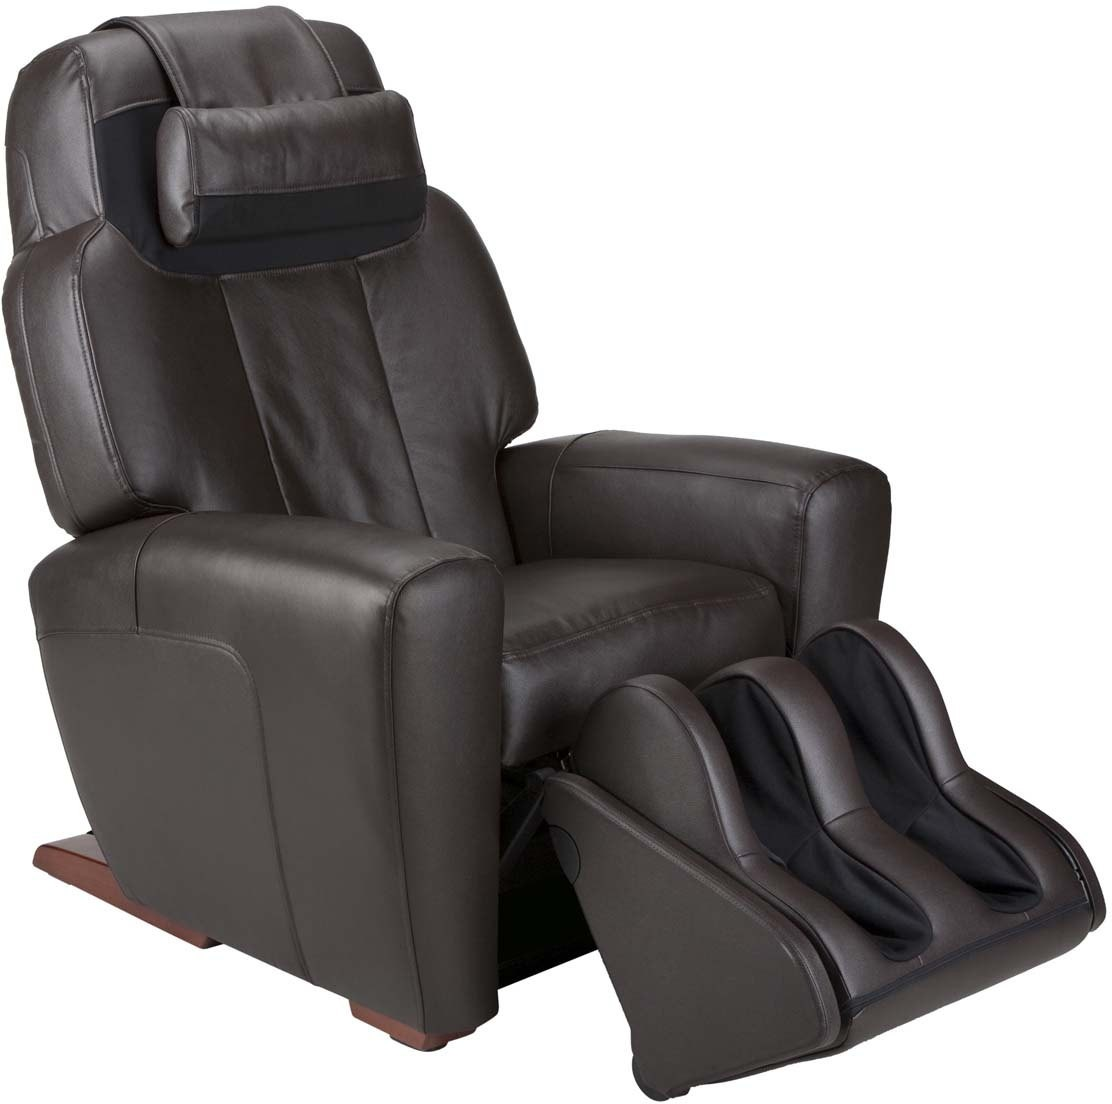 Sofas Online Valencia Valencia Seating Quality Office Chairs Ergonomic Recliners And